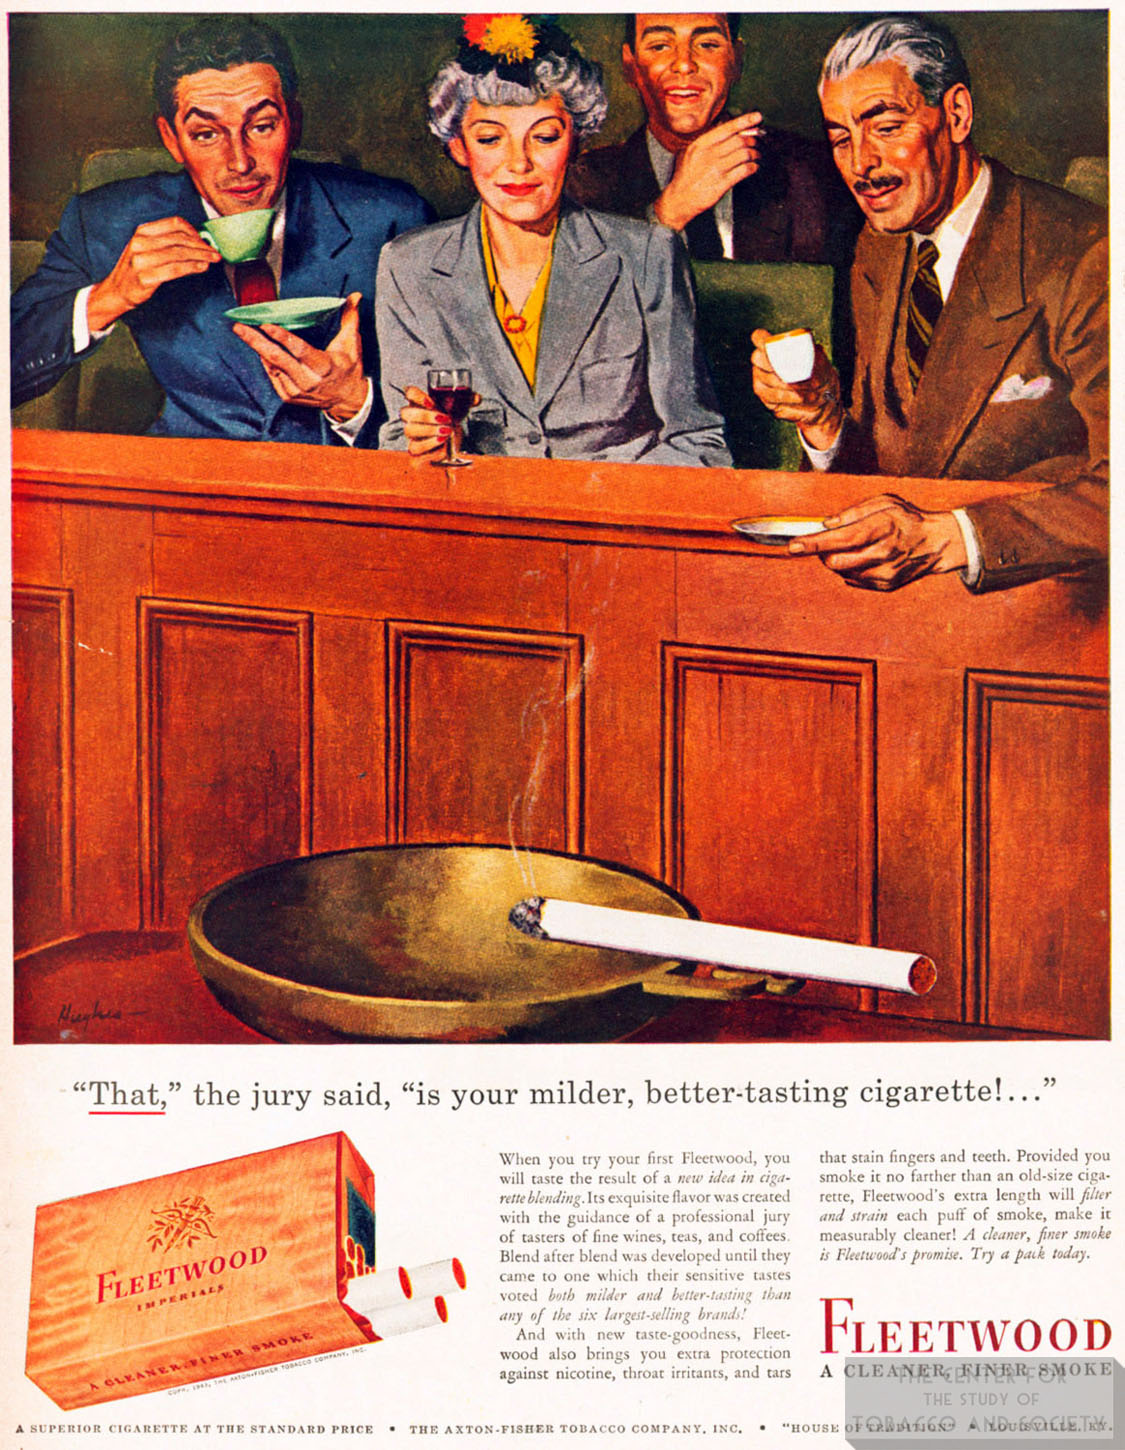 1943 Fleetwood Ad Jury Agrees on Better Tasting Cig 1